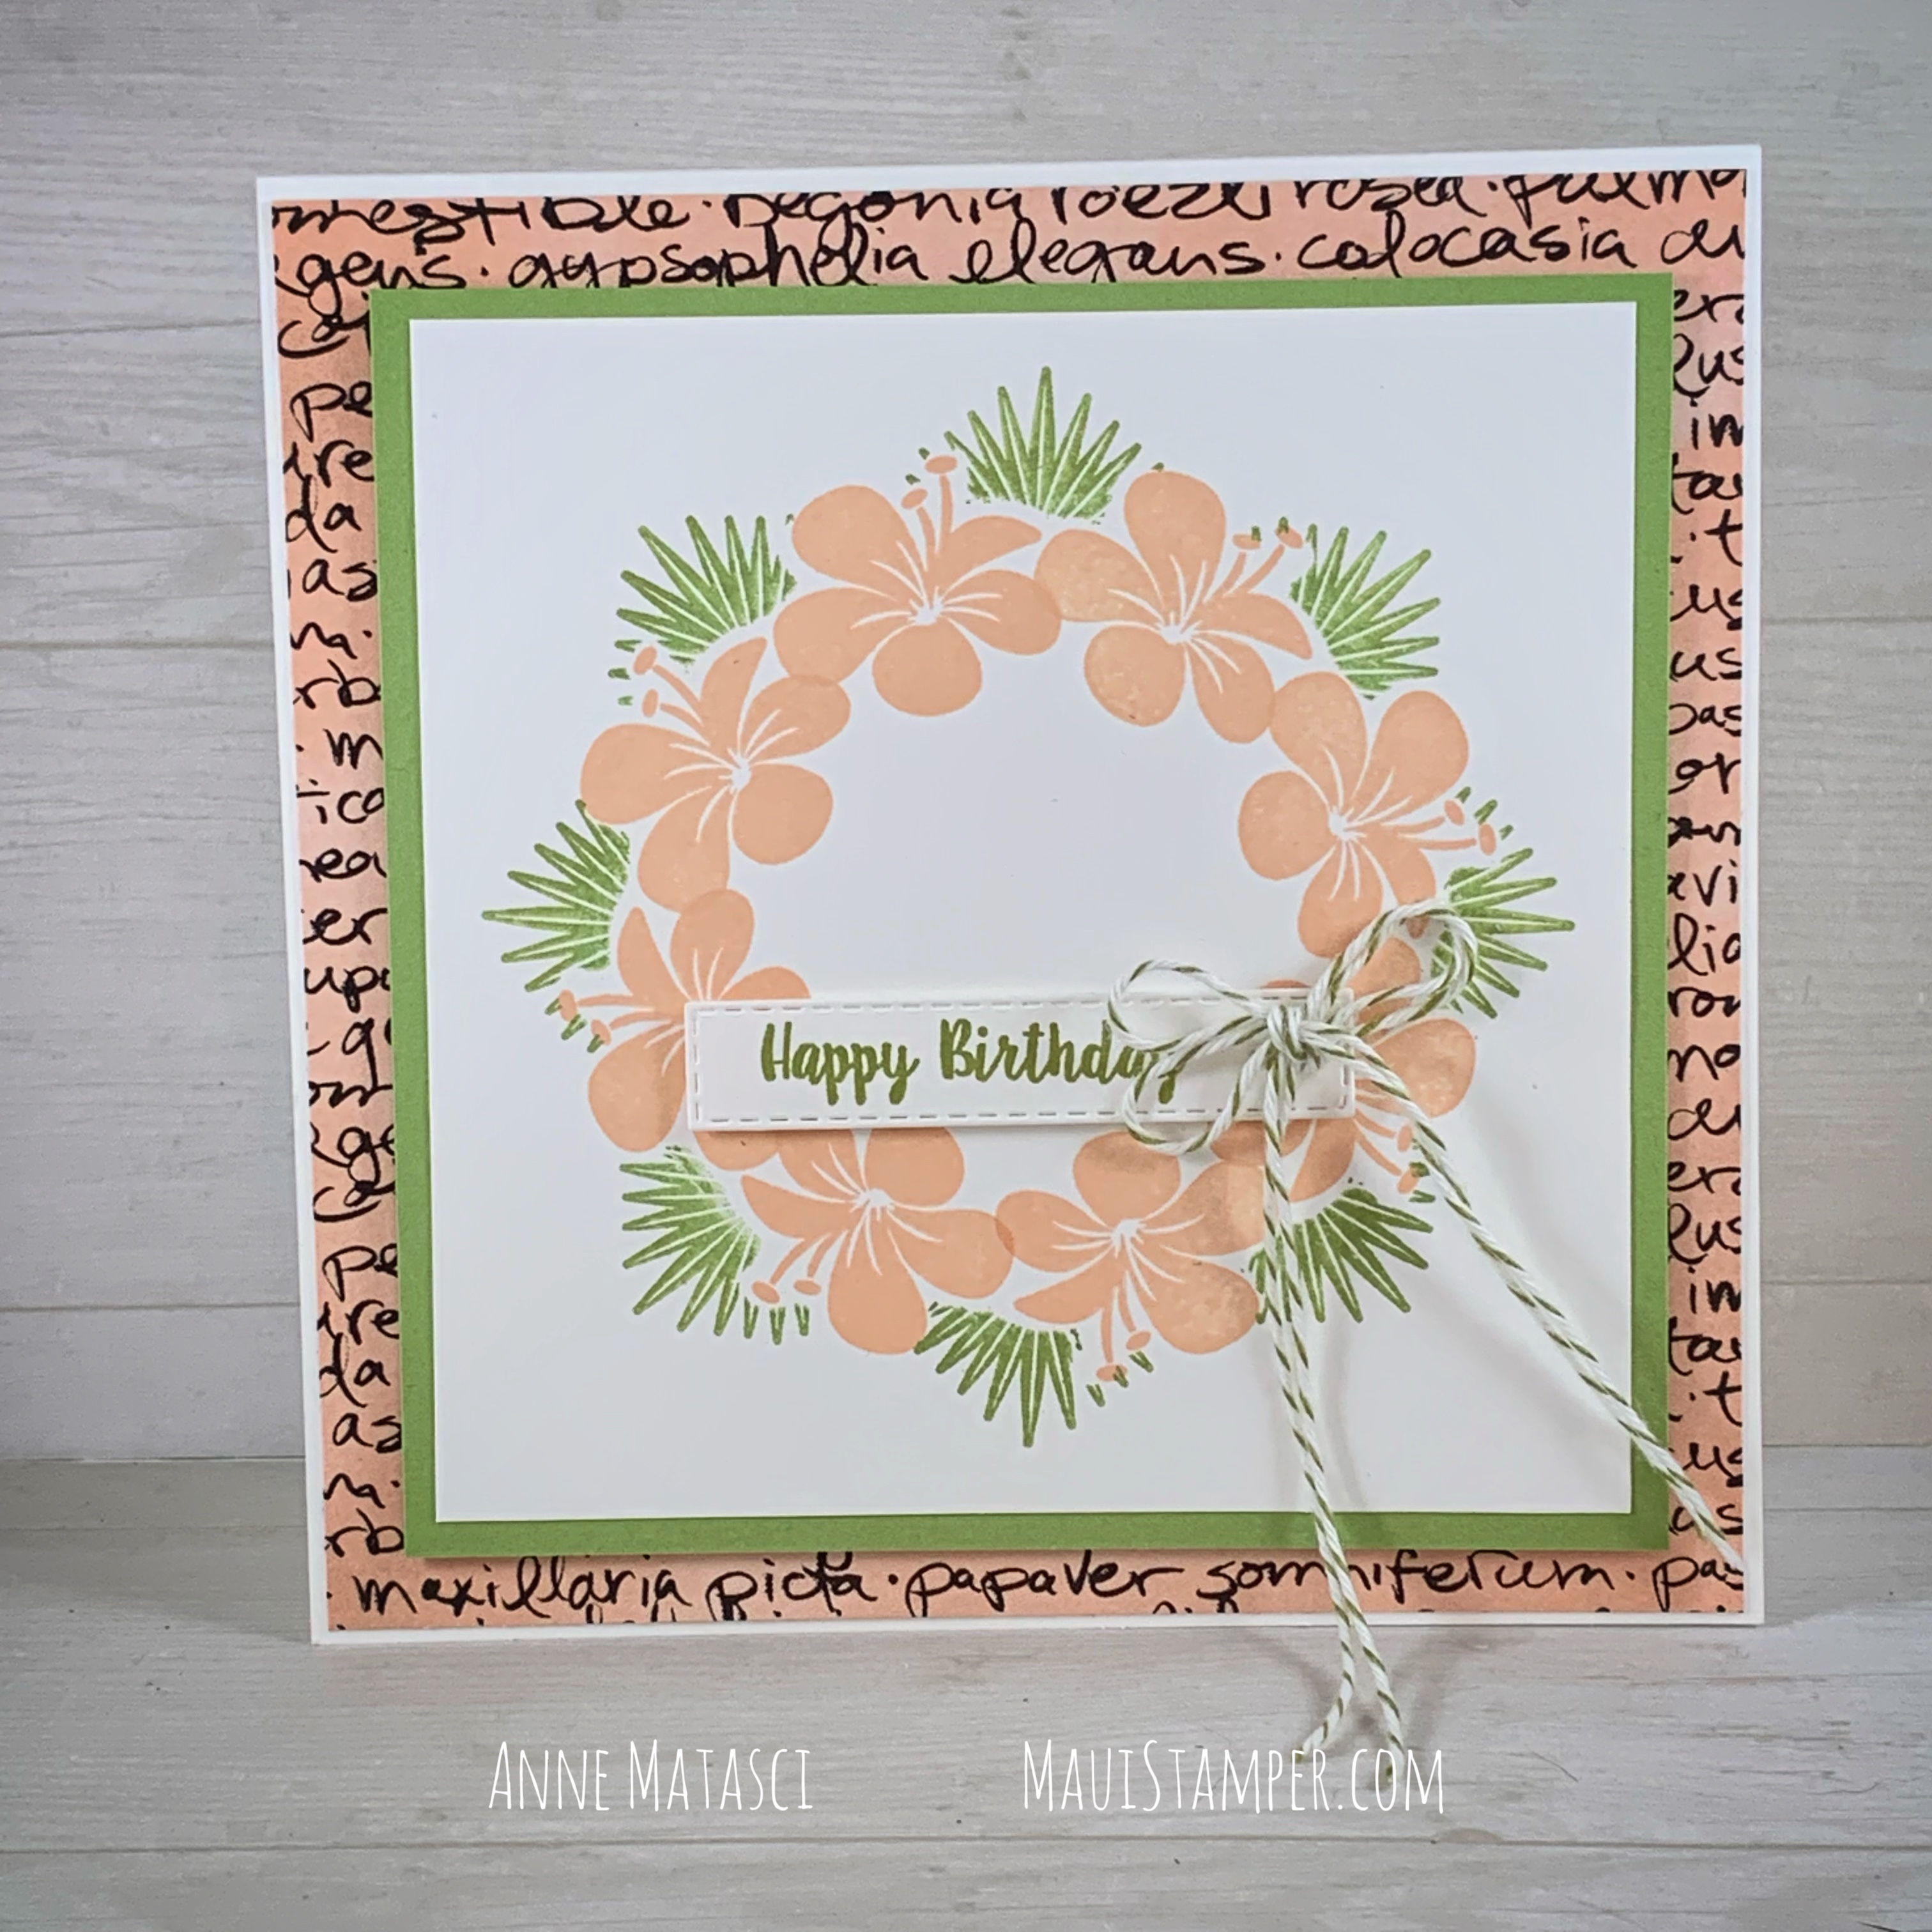 Maui Stamper Stampin Up Tropical Chic Square Wreath with the Stamparatus